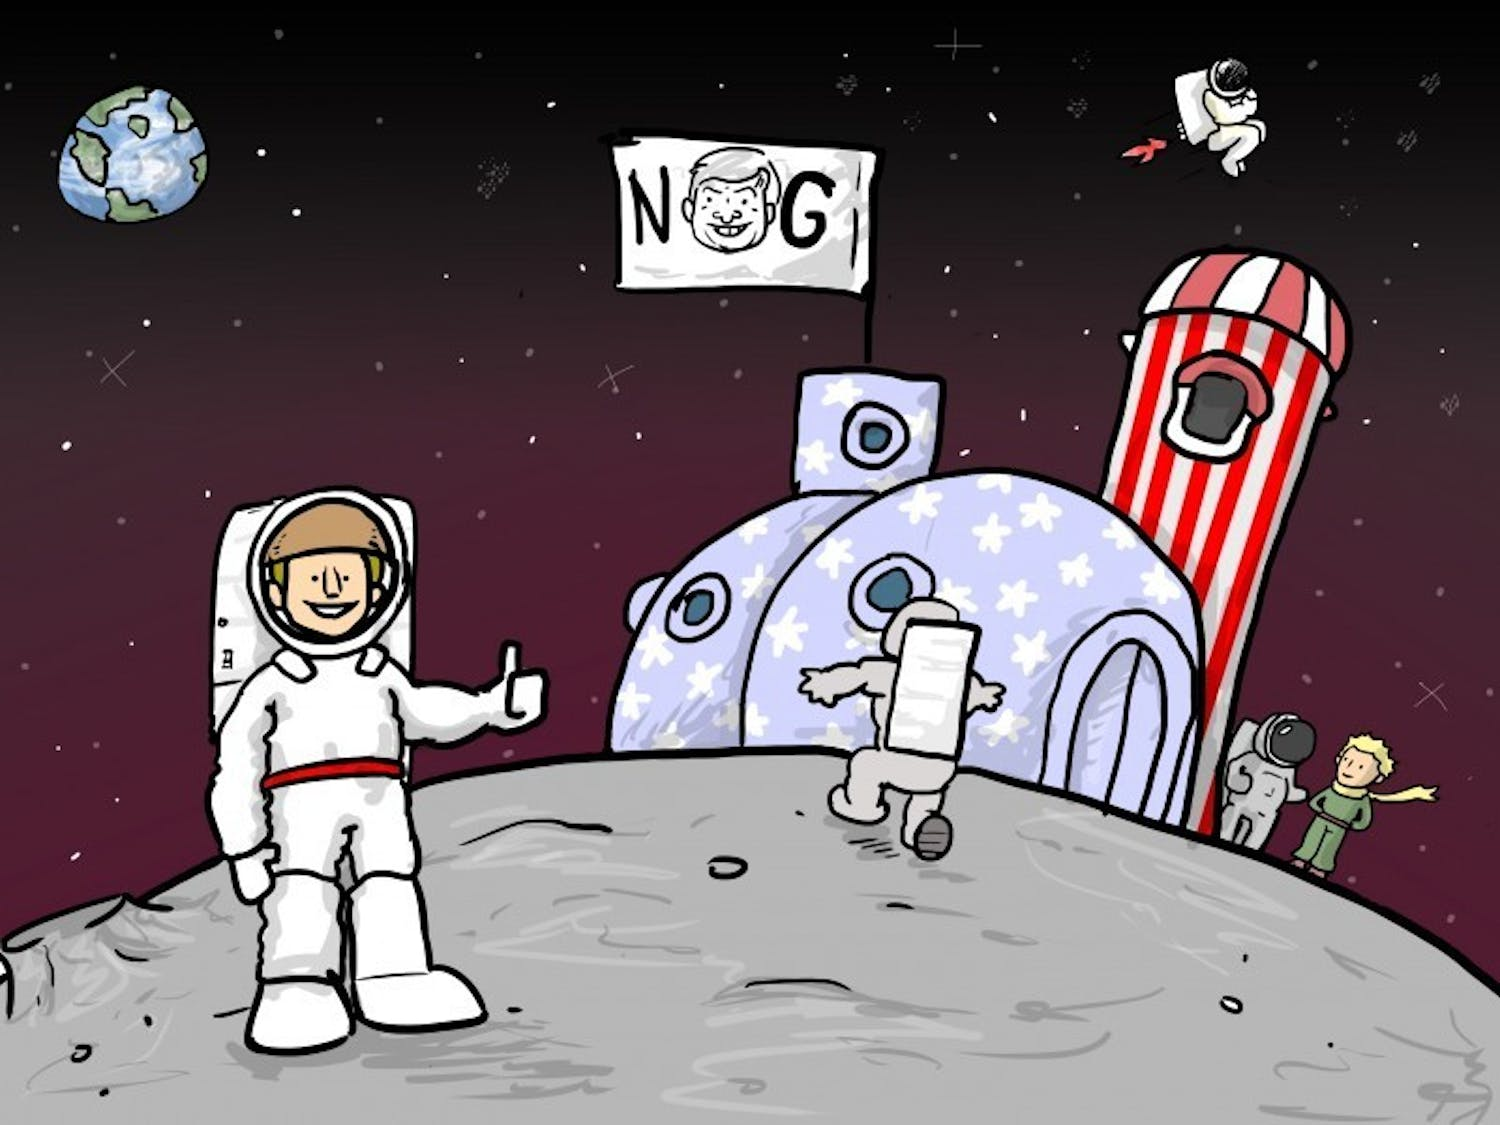 Gingrich moon colony